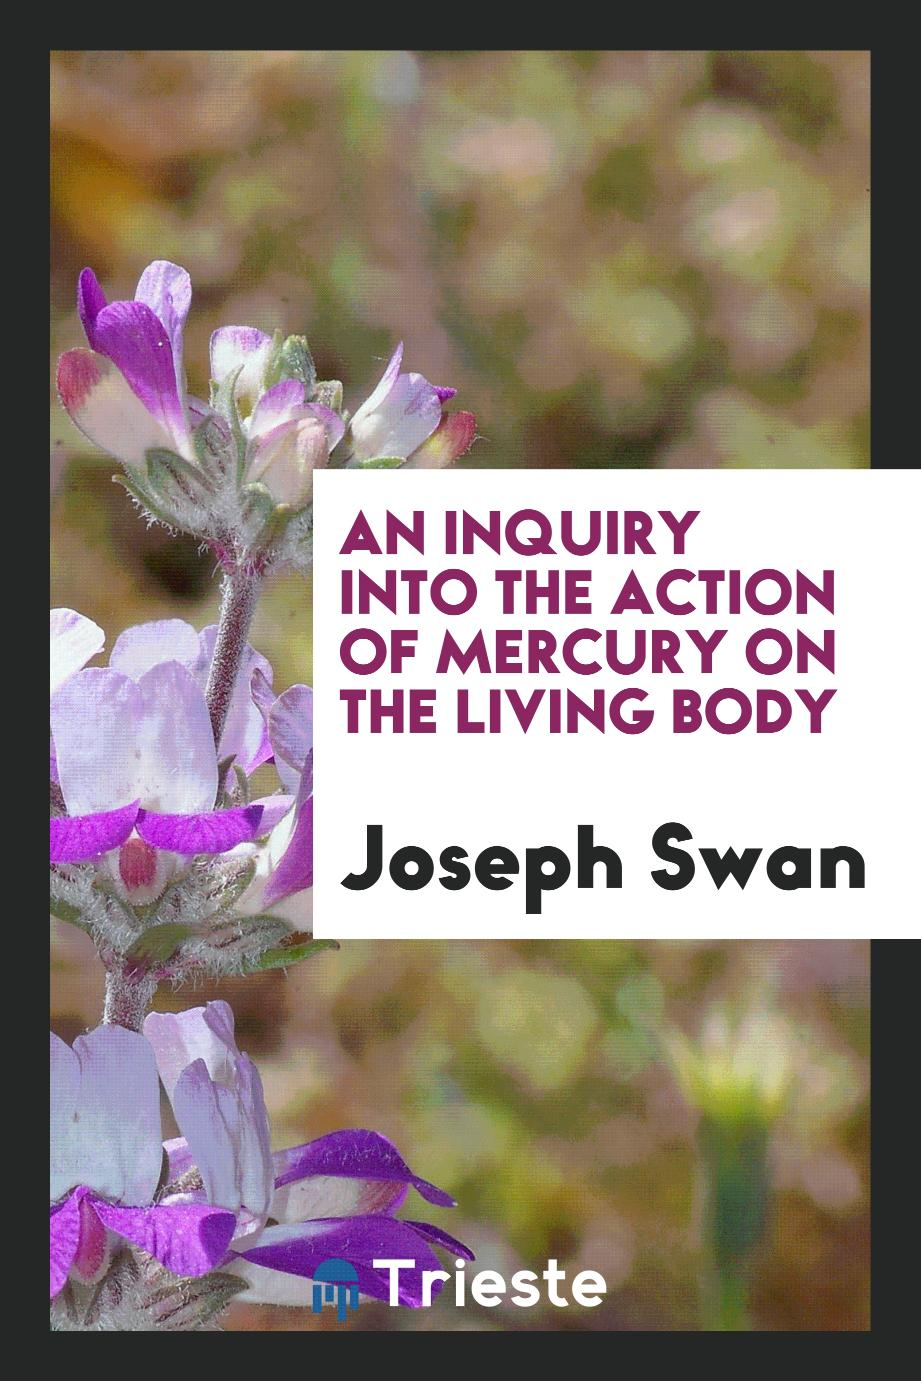 An inquiry into the action of mercury on the living body